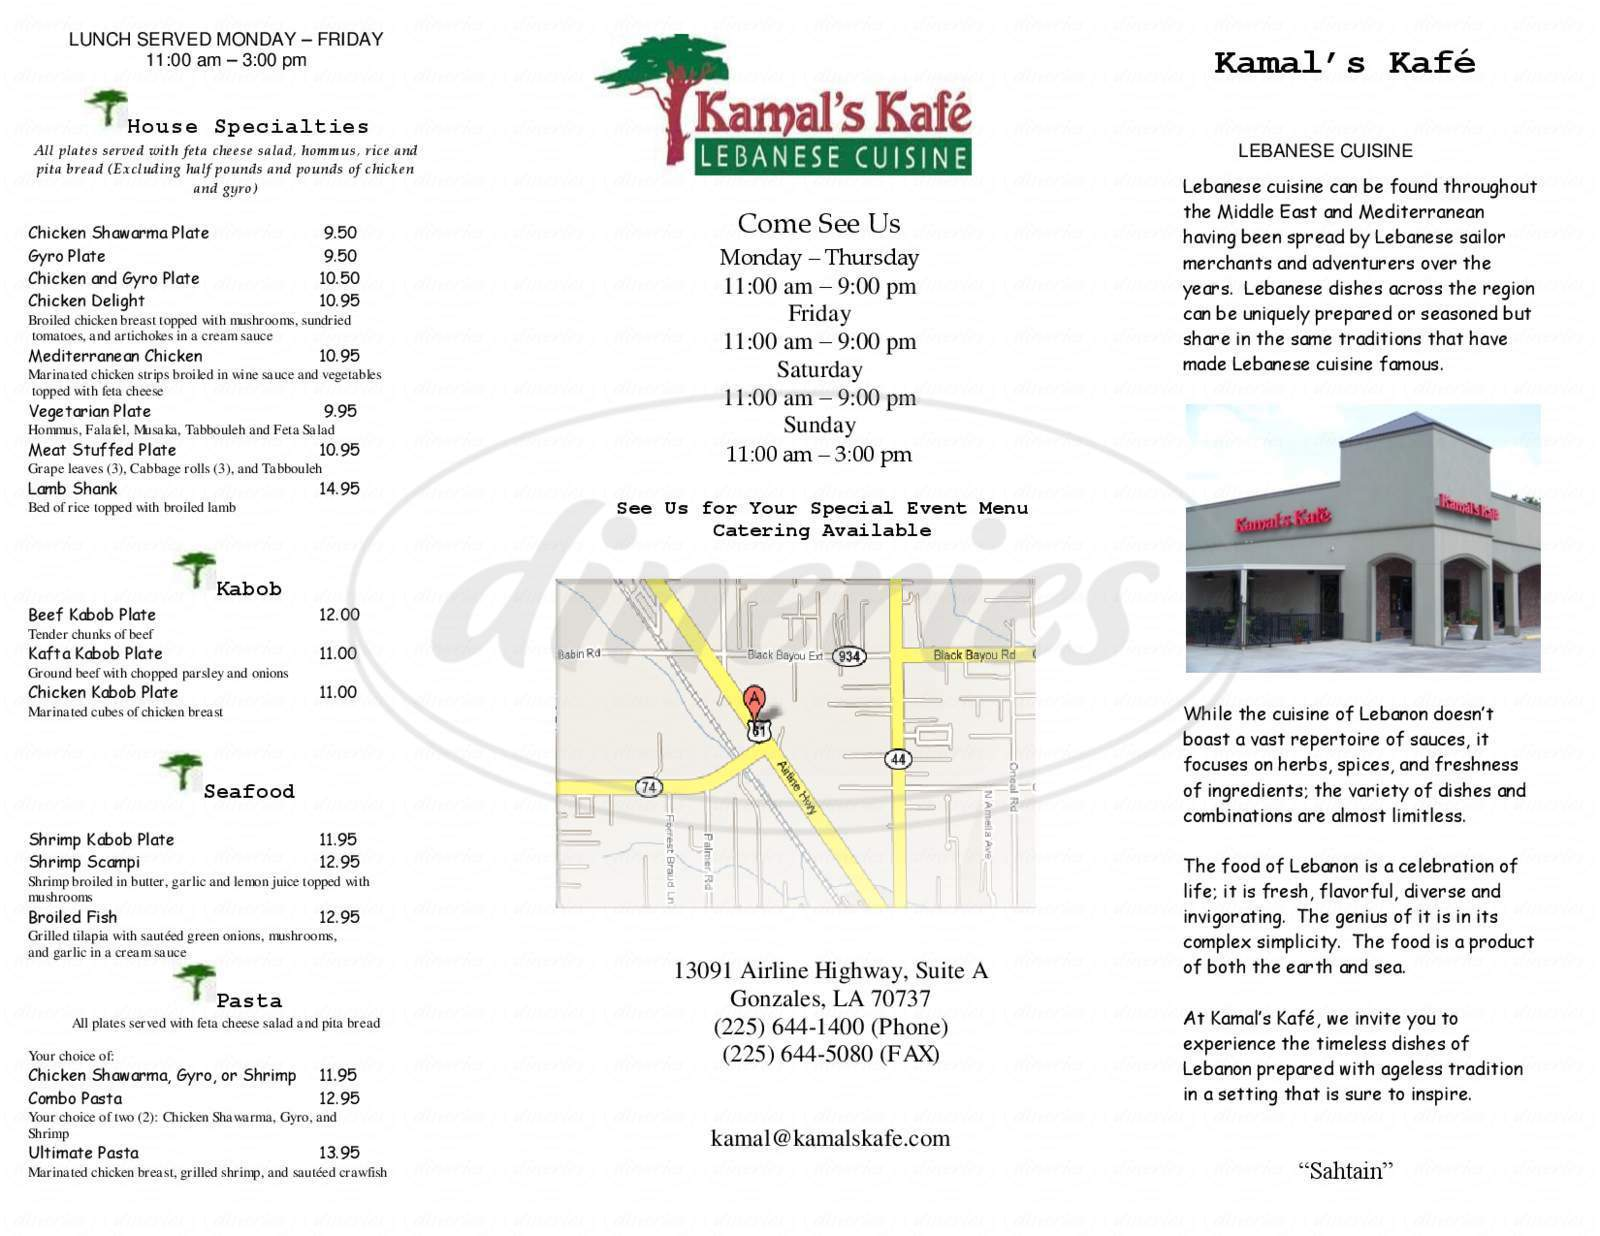 menu for Kamal's Kafe